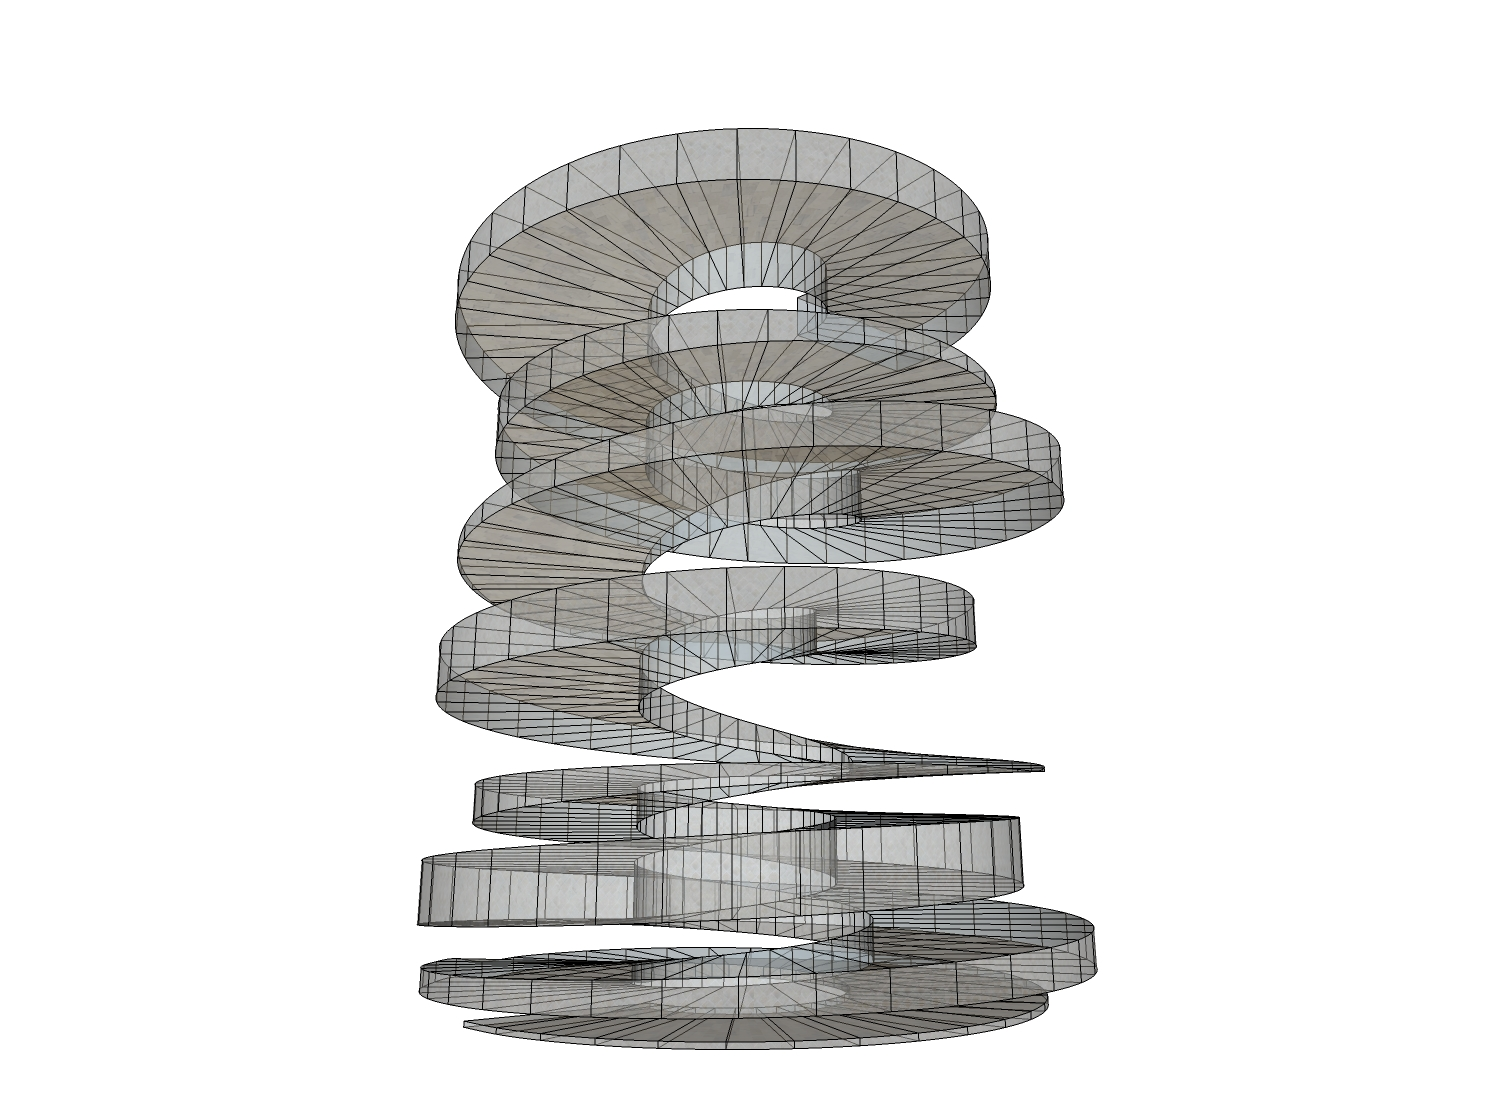 Cloud9 spiral ramp study by dc of sketchup for Cloud 9 architecture